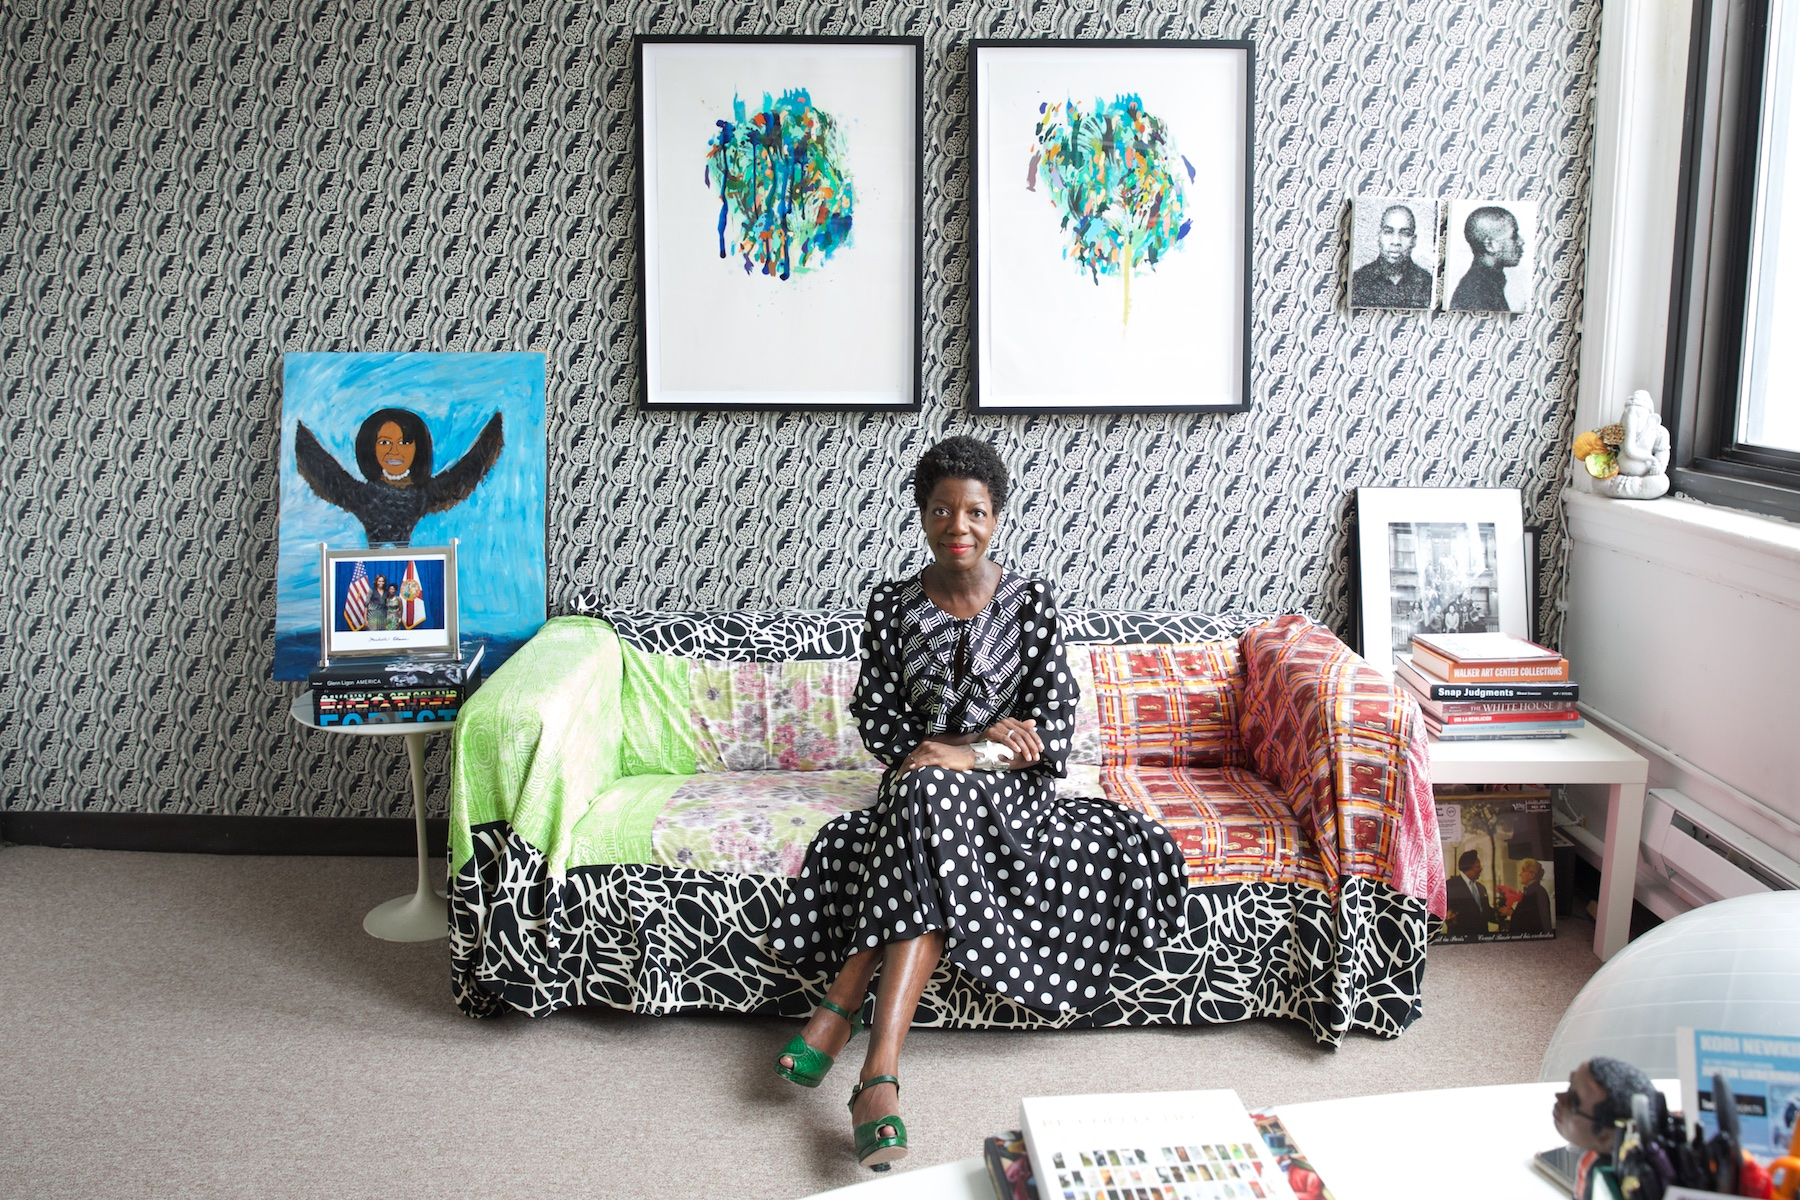 Thelma Golden, in her cool office, wearing cool clothes, surrounded by cool books and cool art ( Via Artsy )